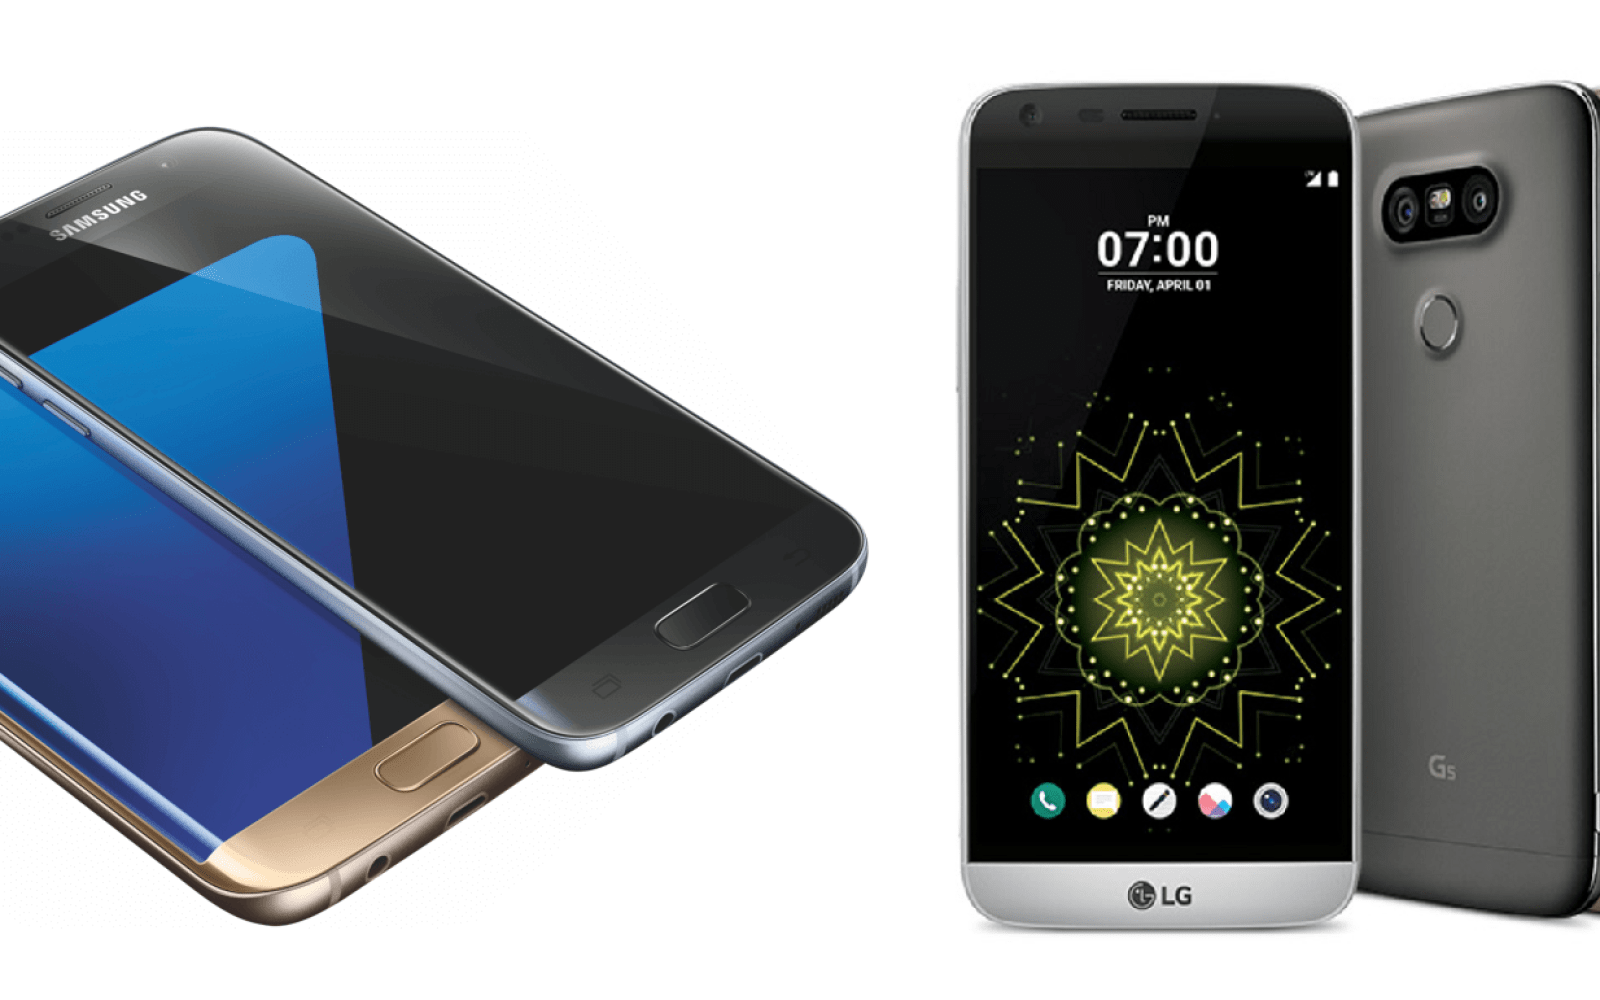 Samsung Galaxy S7 vs. Galaxy S7 edge vs. LG G5 specs compared – which is your pick? [Poll]